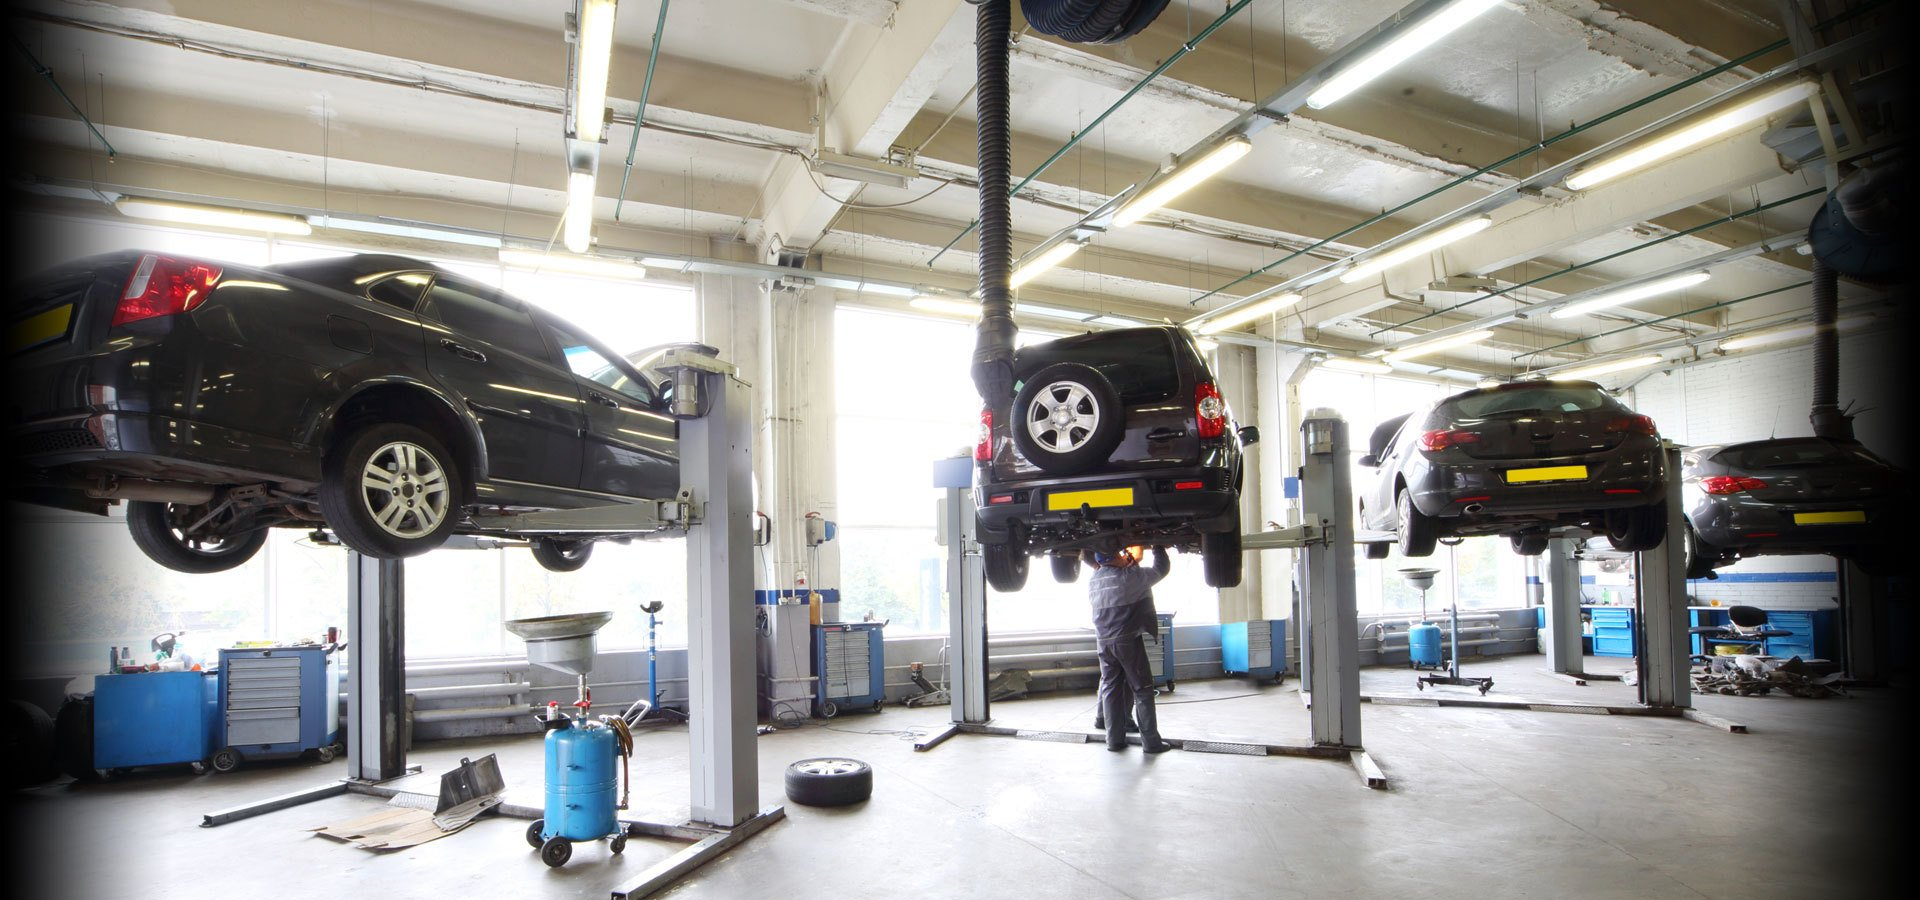 Cars on ramps in the workshop